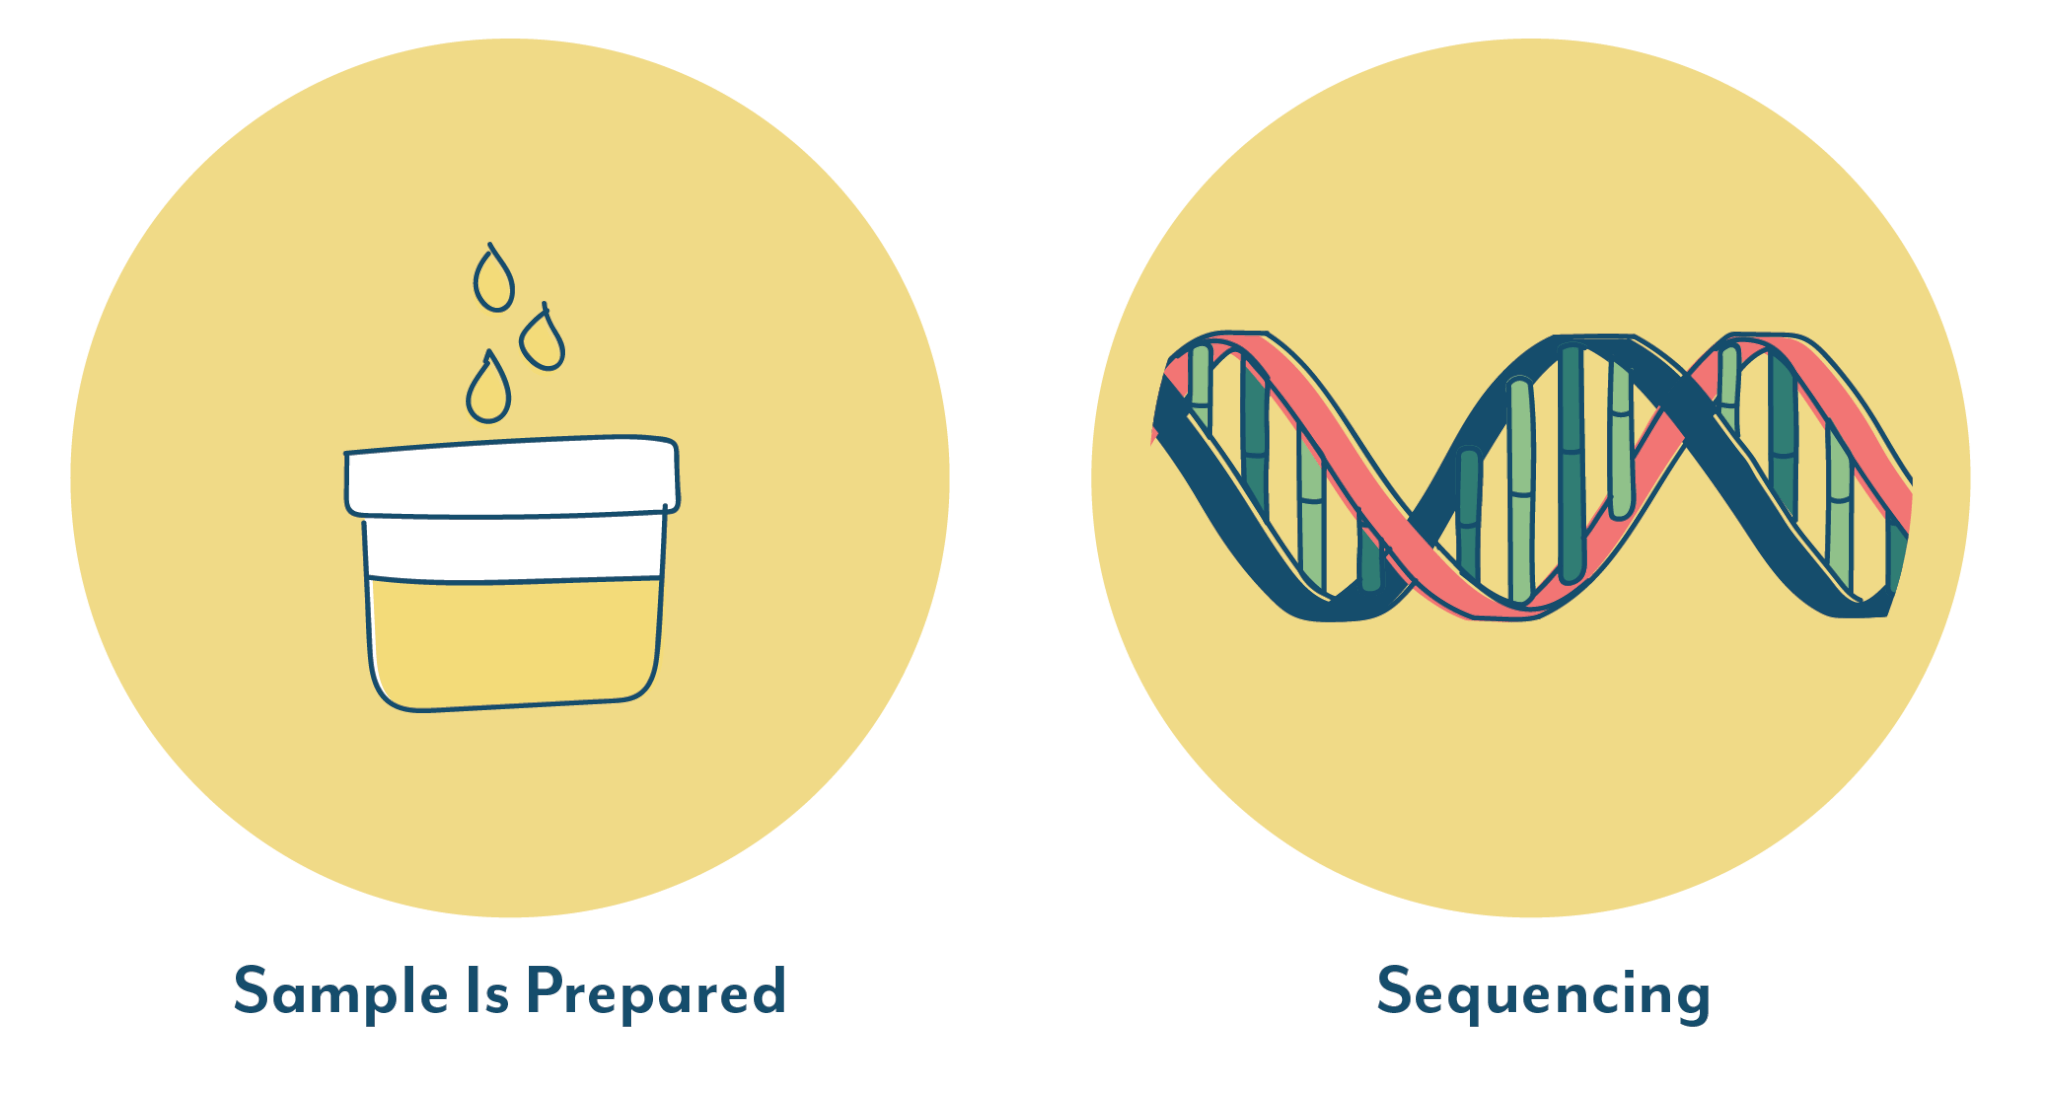 Next Generation Sequencing steps by Aperiomics